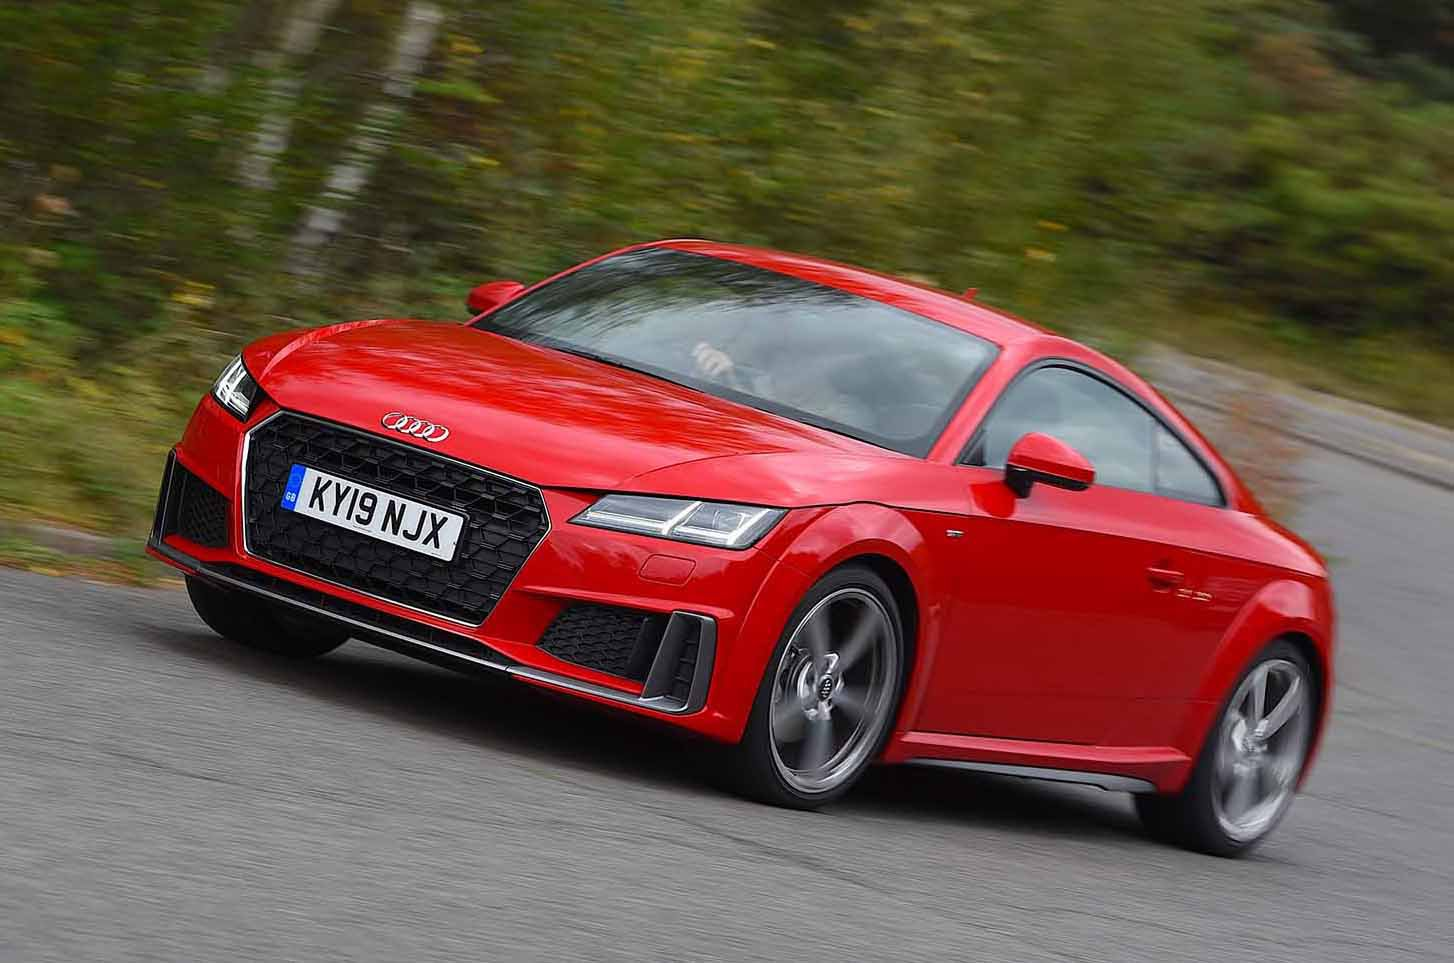 2019 Audi TT Coupe front red